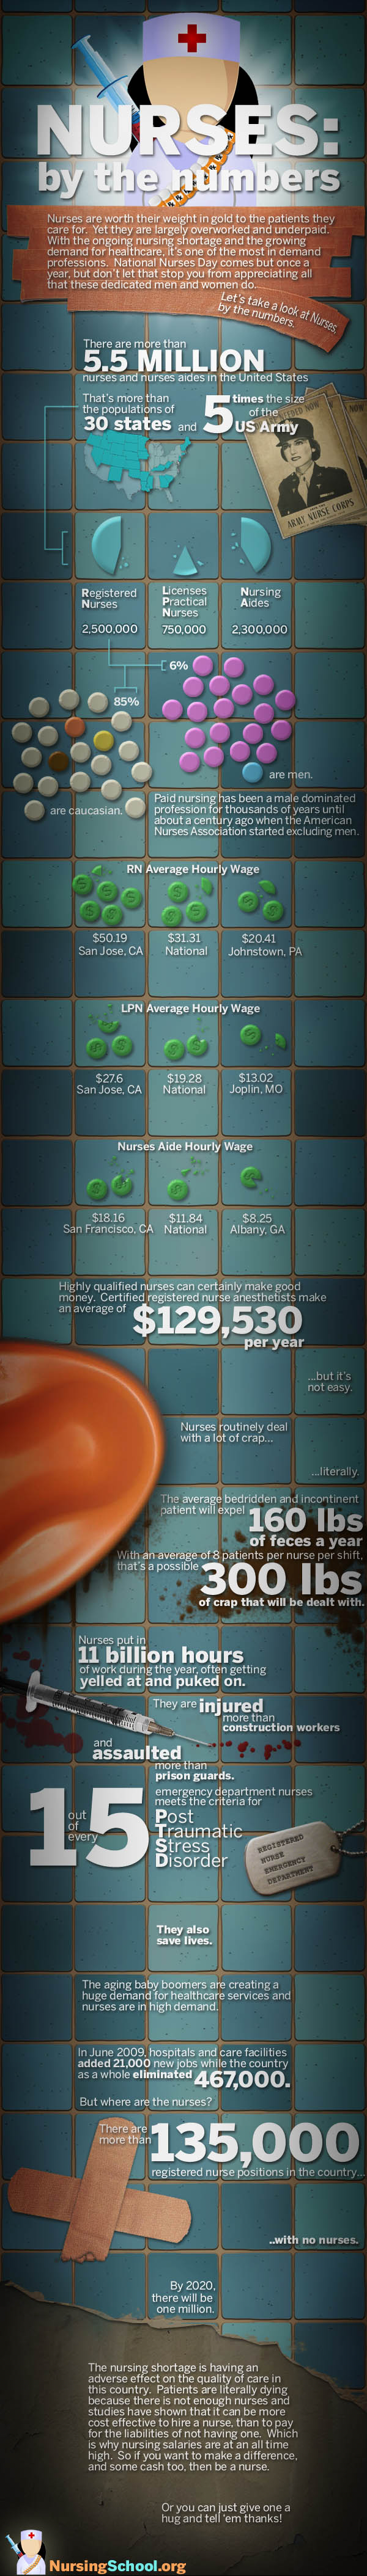 A Look At US Healthcare By The Numbers Infographic